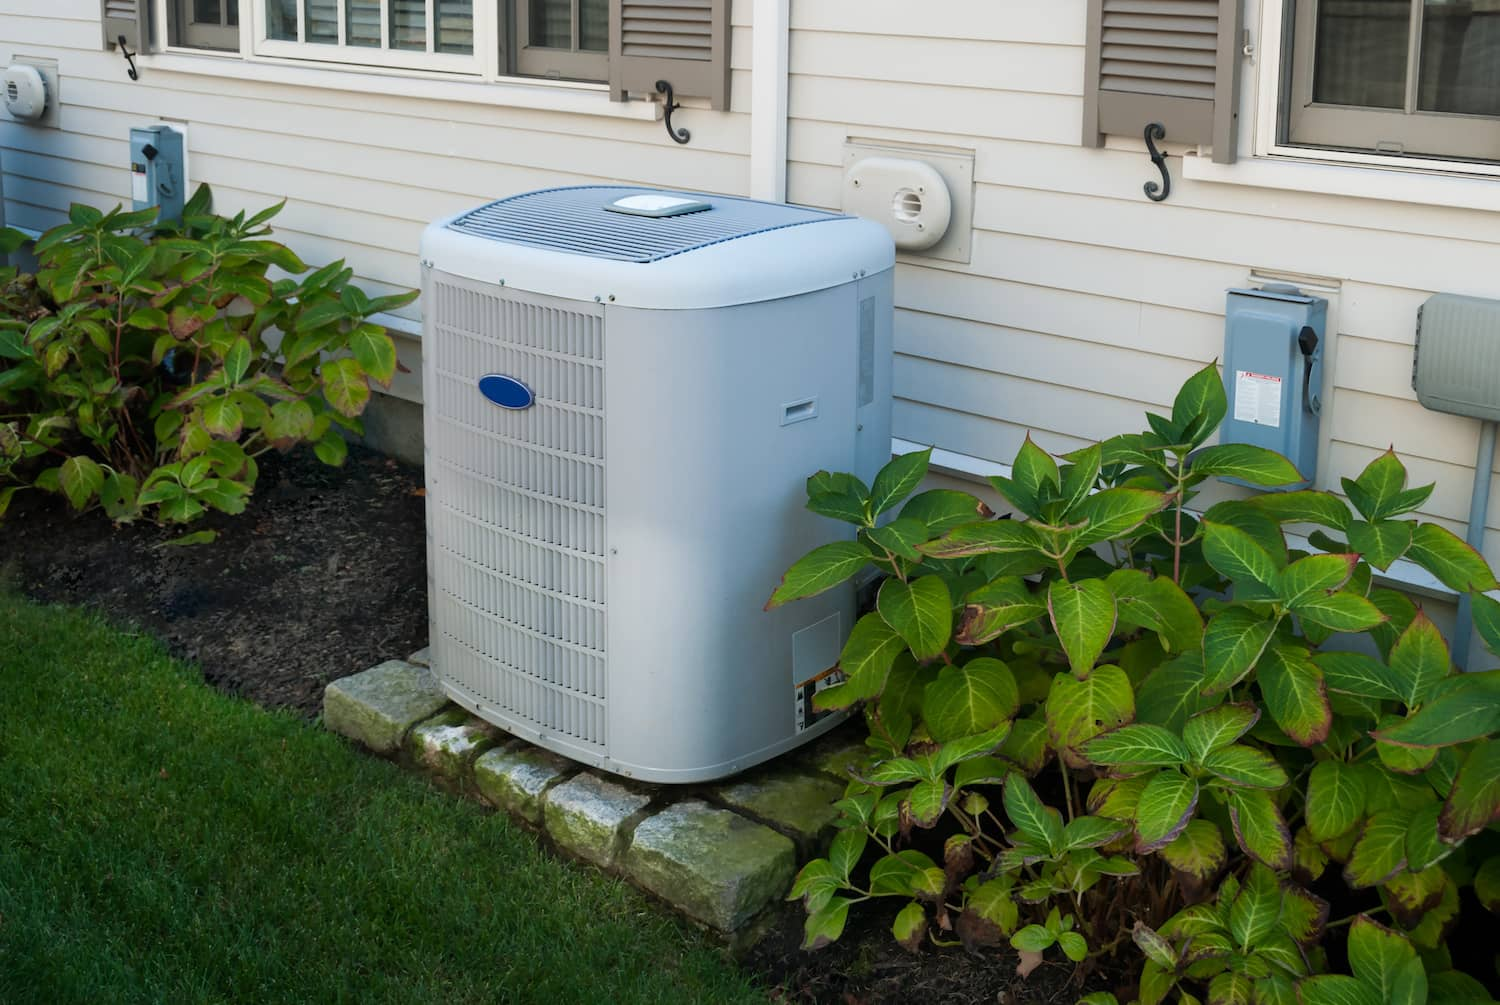 How much water should drain from your air conditioner